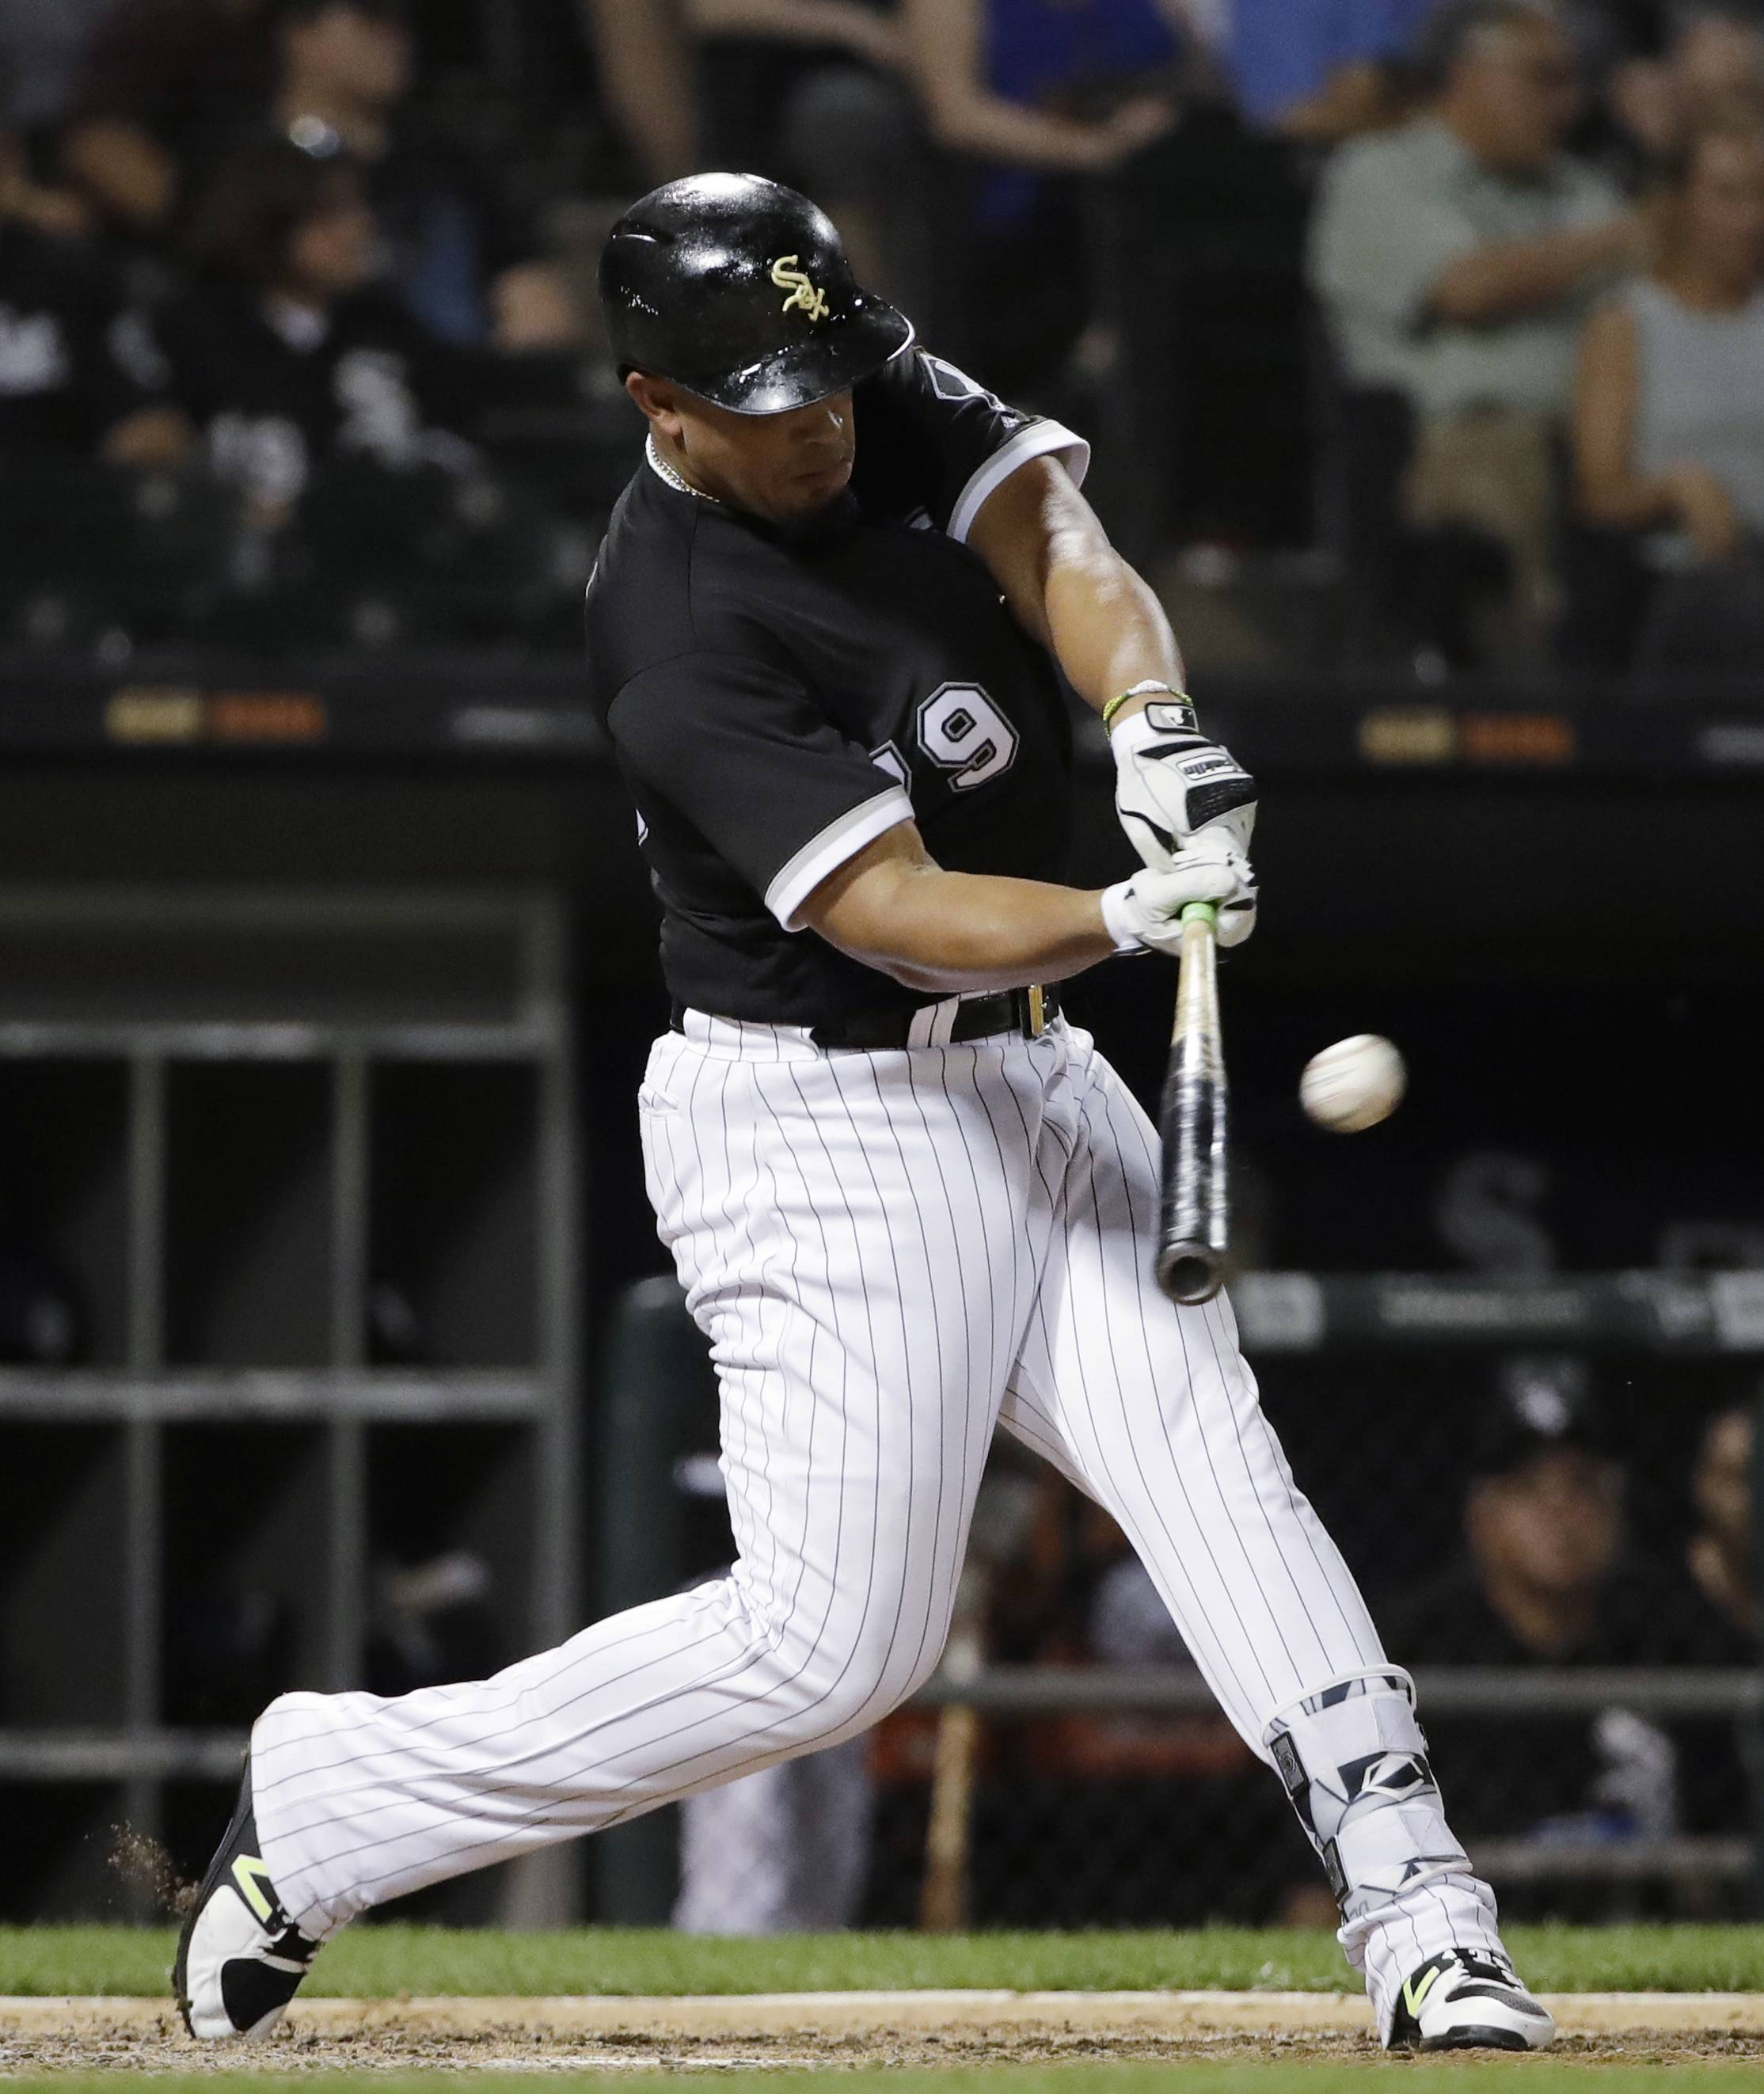 Chicago White Sox's Jose Abreu hits a solo home run against the Kansas City Royals during the sixth inning of a baseball game Friday, July 13, 2018, in Chicago.